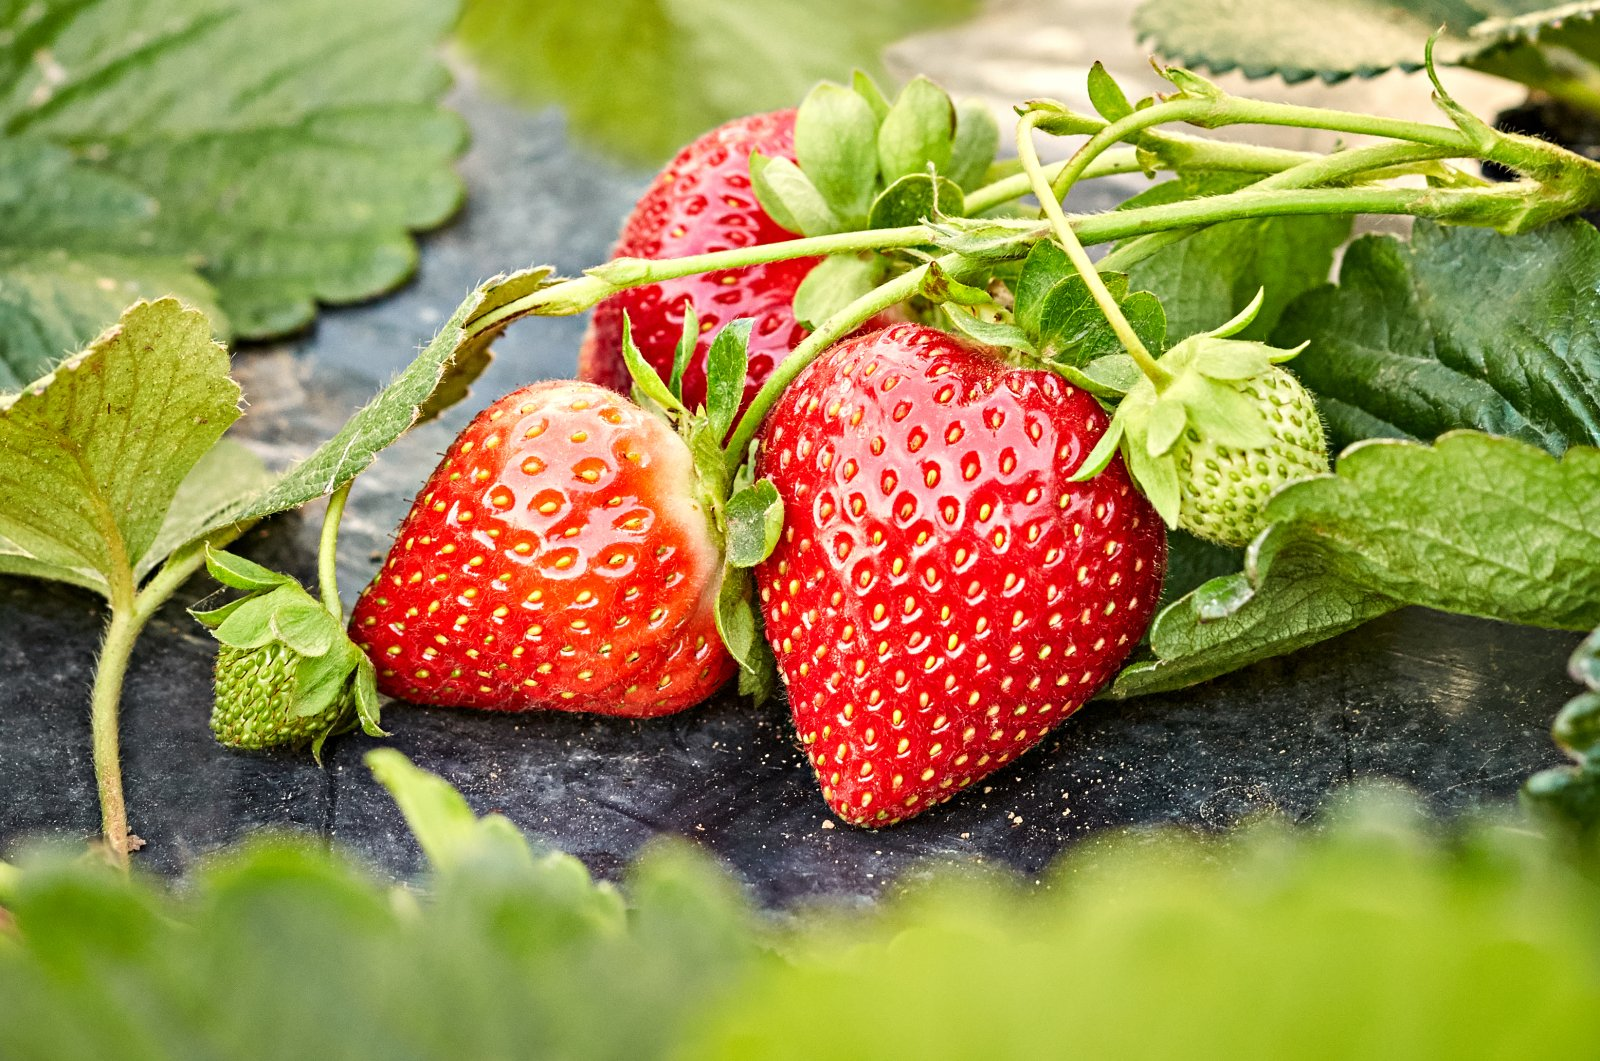 Bugs and worms can live in your strawberries, though it is rare. (iStock Photo)